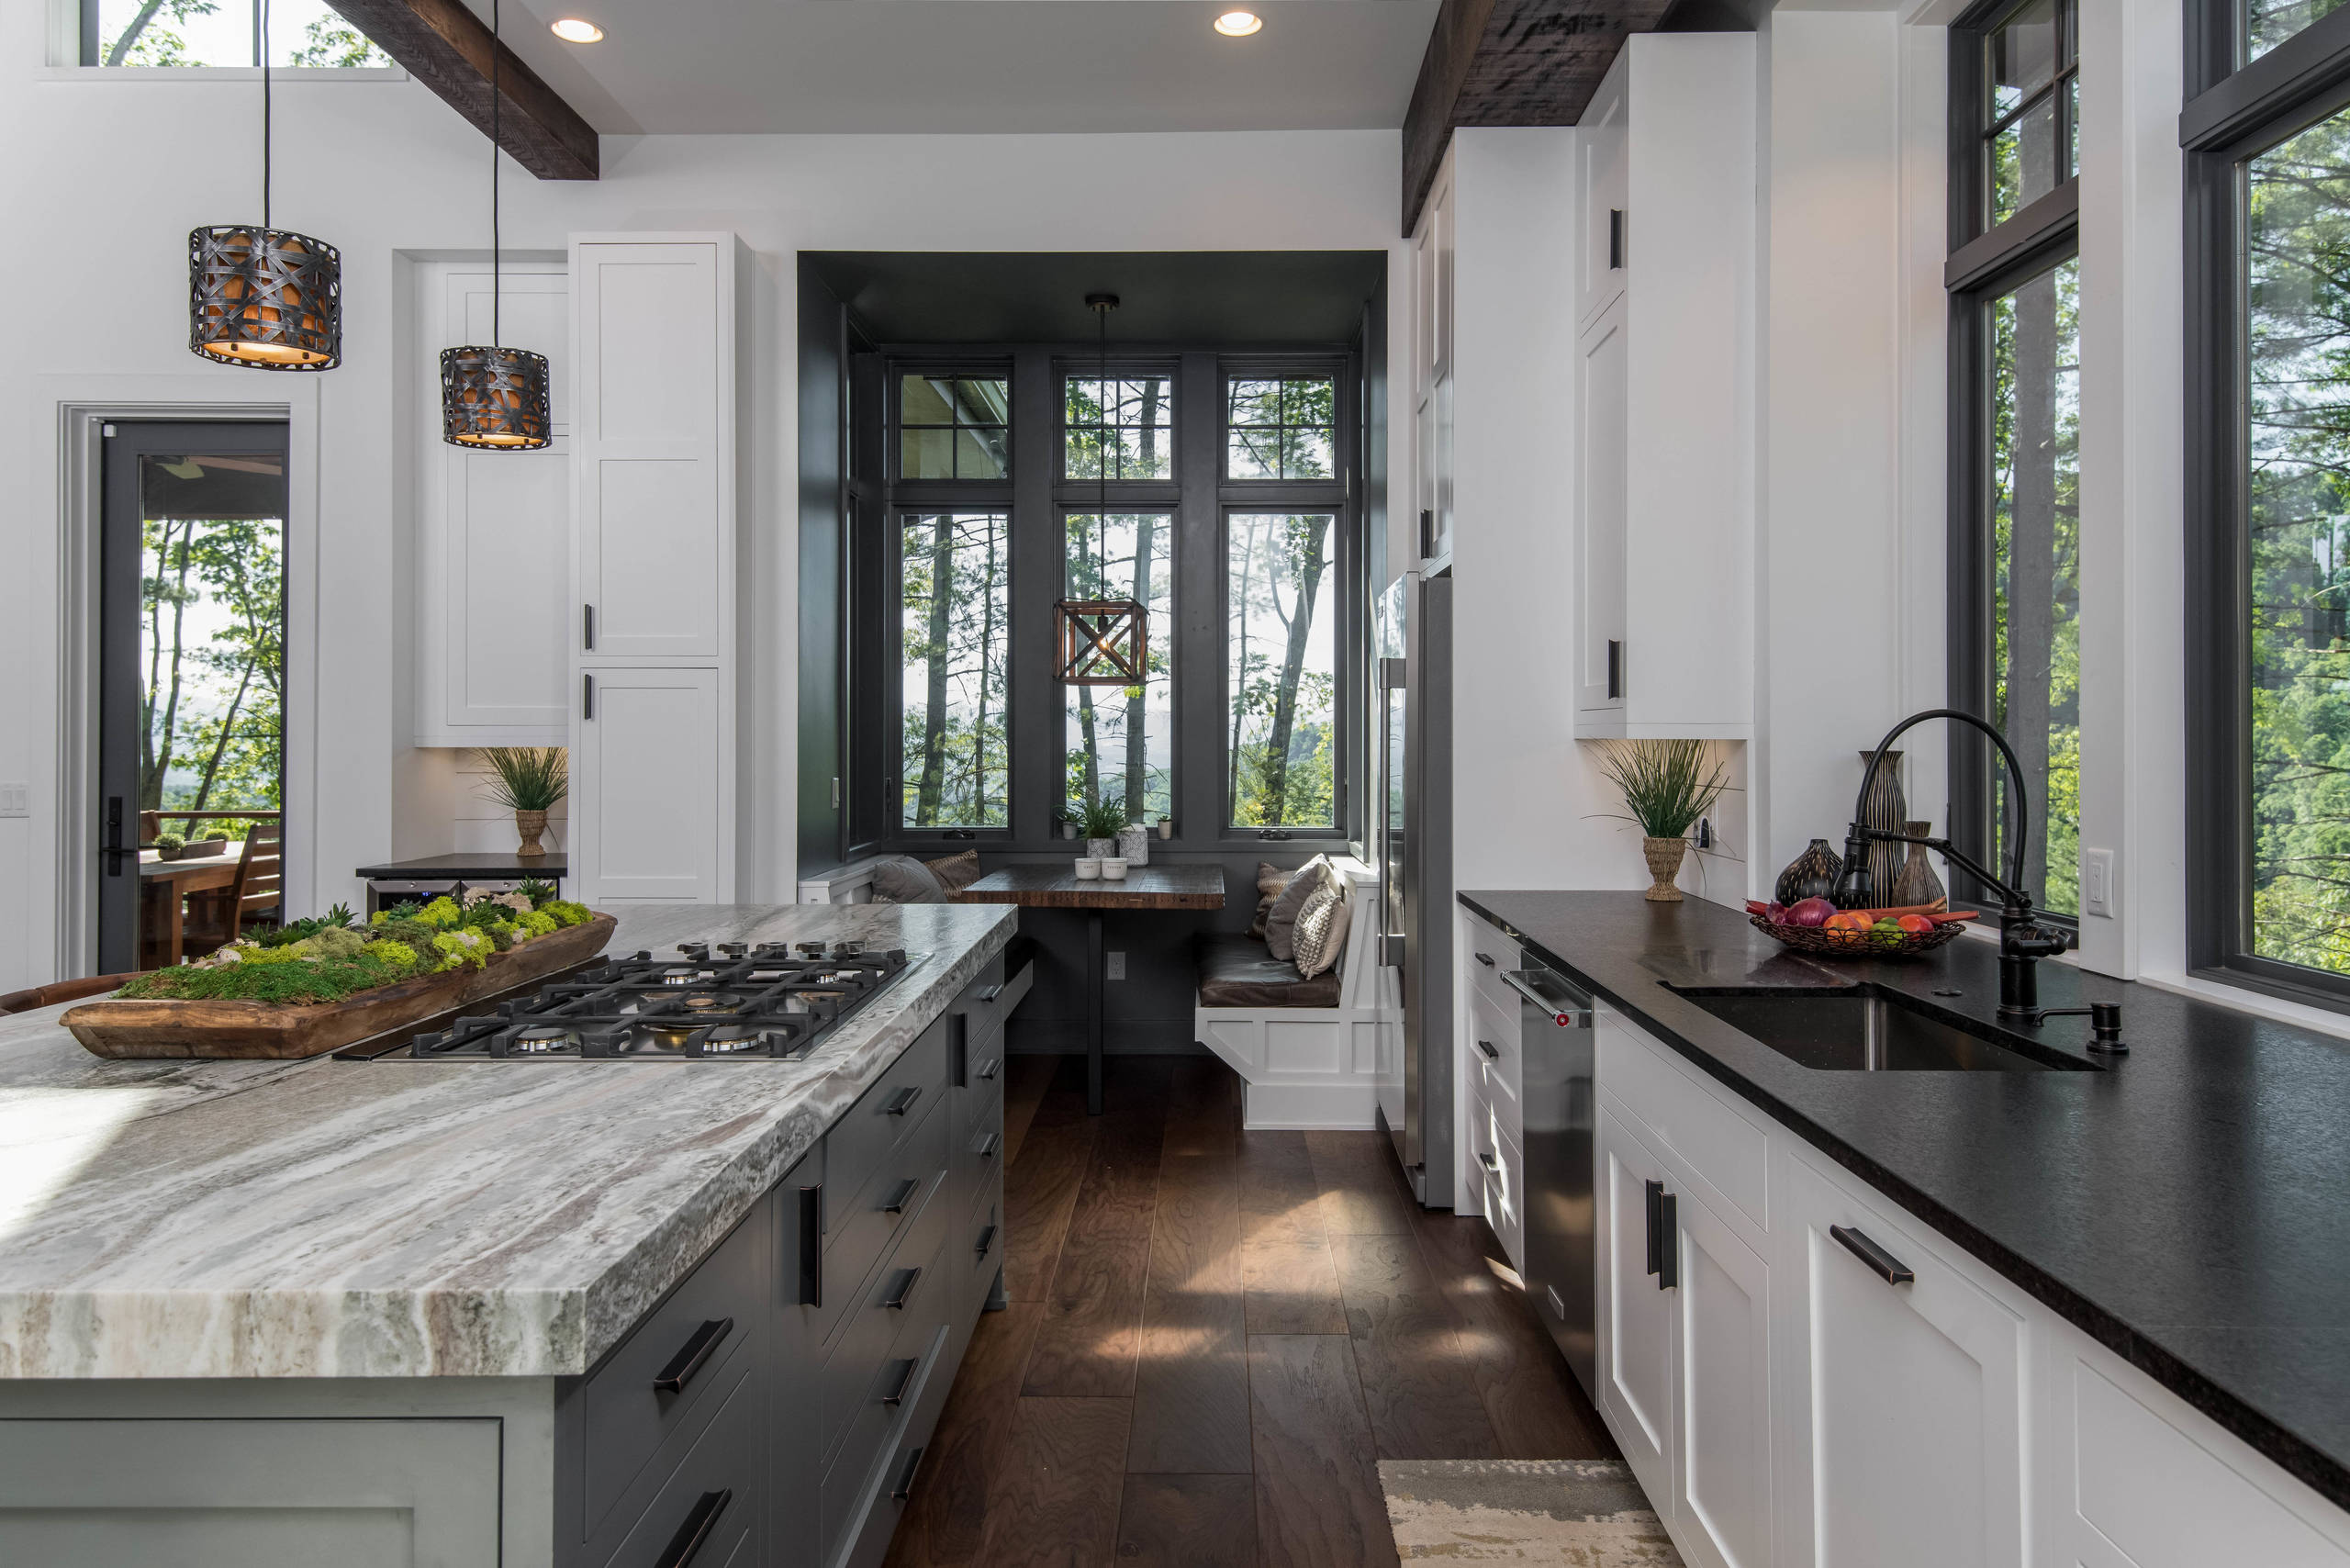 75 Beautiful White Kitchen With Black Countertops Pictures Ideas March 2021 Houzz